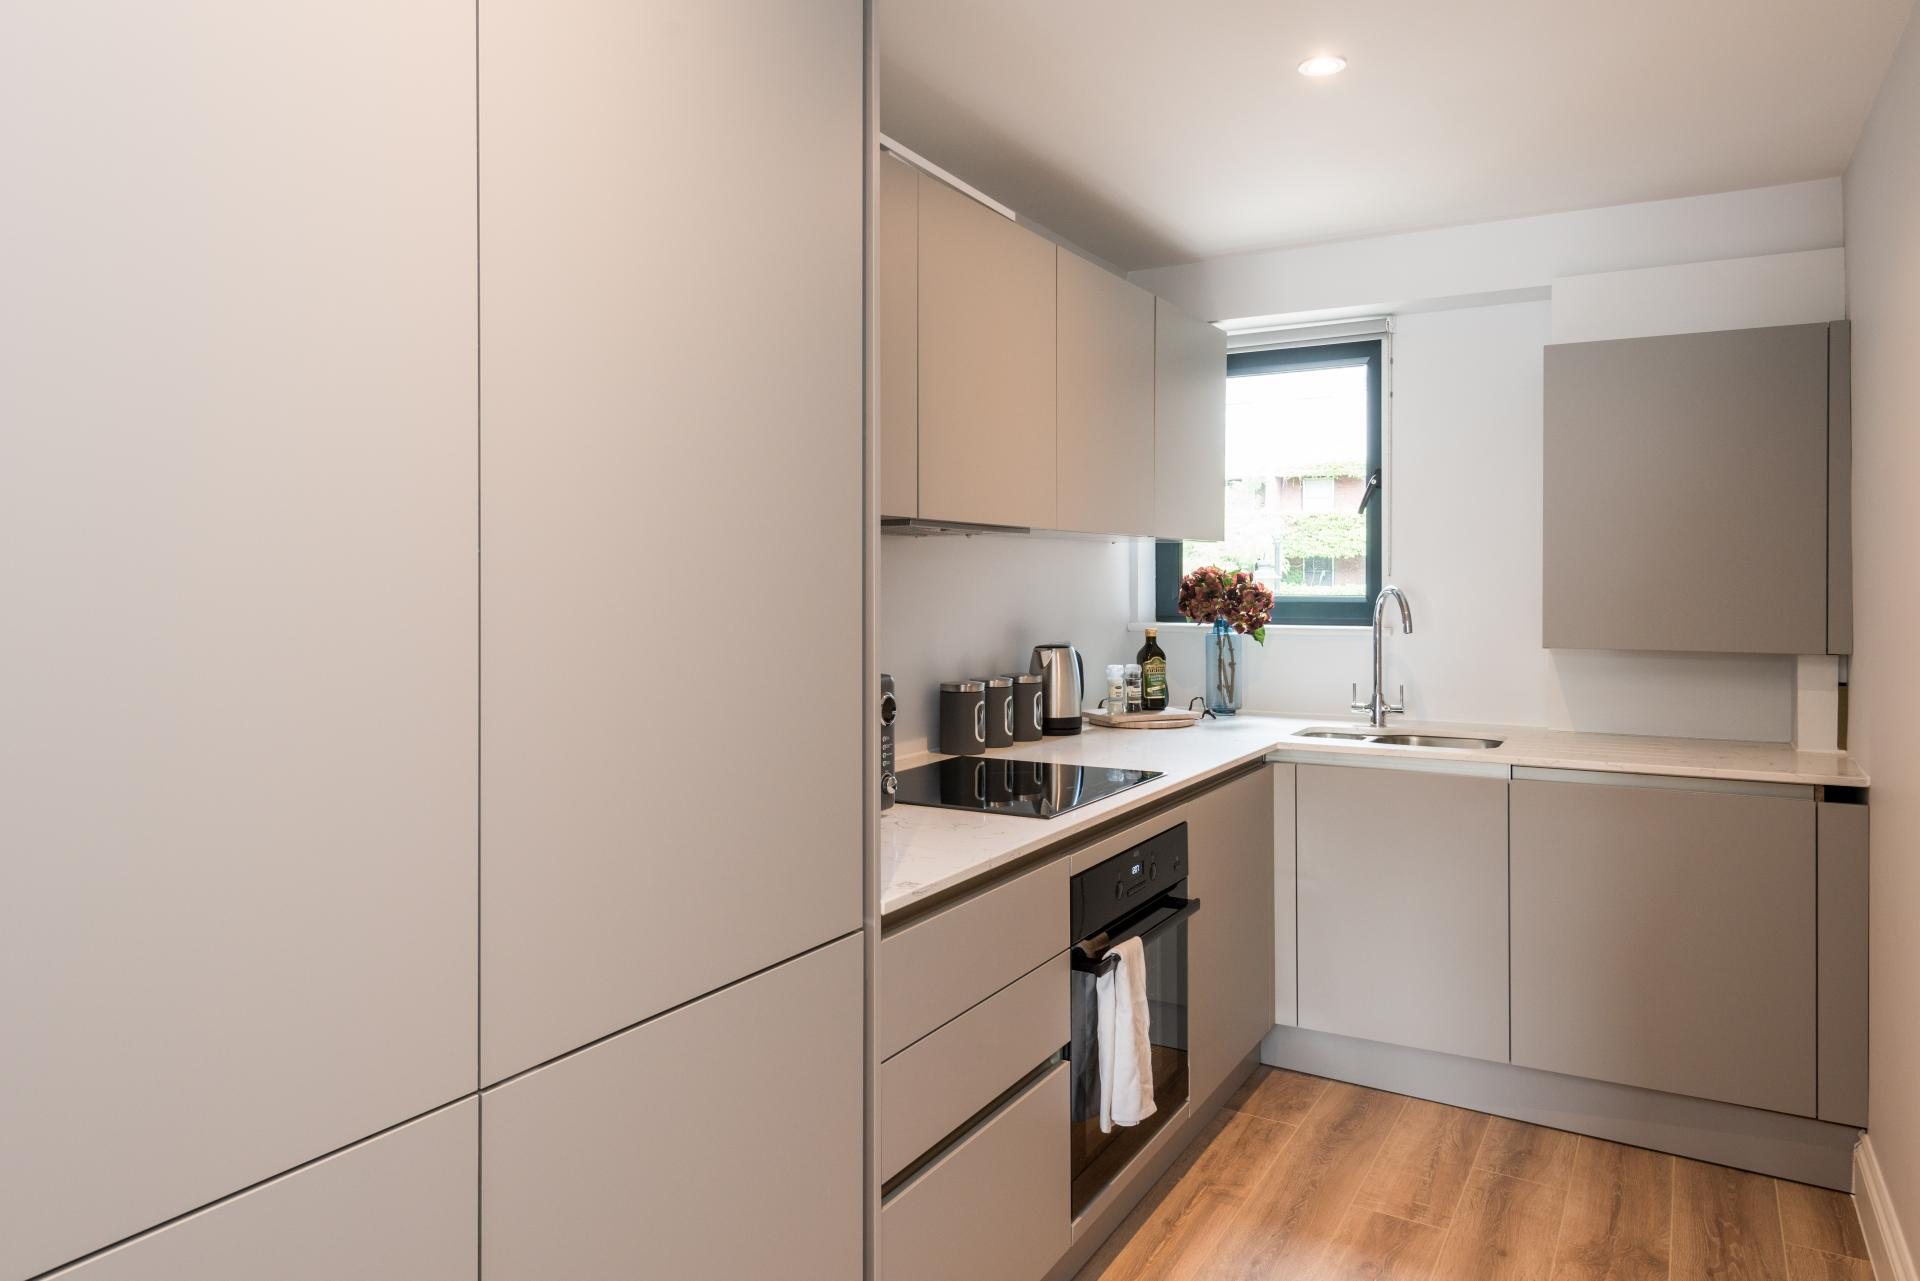 Kitchen at The Carlyle Serviced Apartments, Earls Court, London - Citybase Apartments